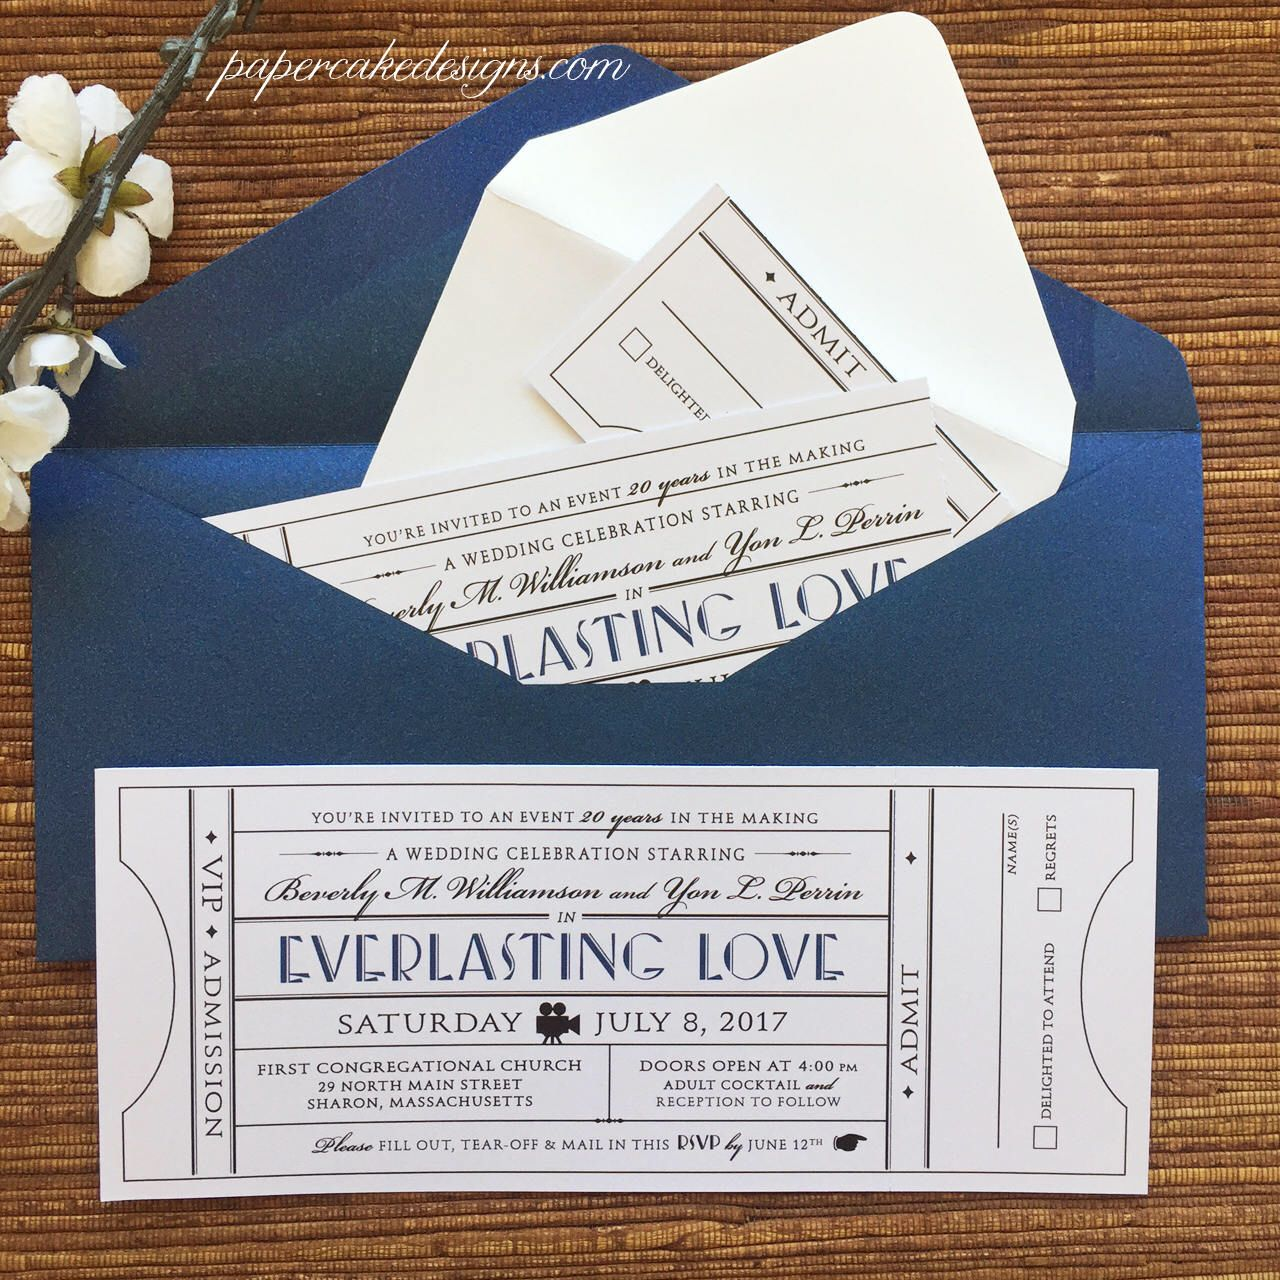 movie ticket stub wedding invitation%0A Vintage Ticket Wedding Invitation with RSVP tearoff stub   Birthday Party  Anniversary Corporate Event